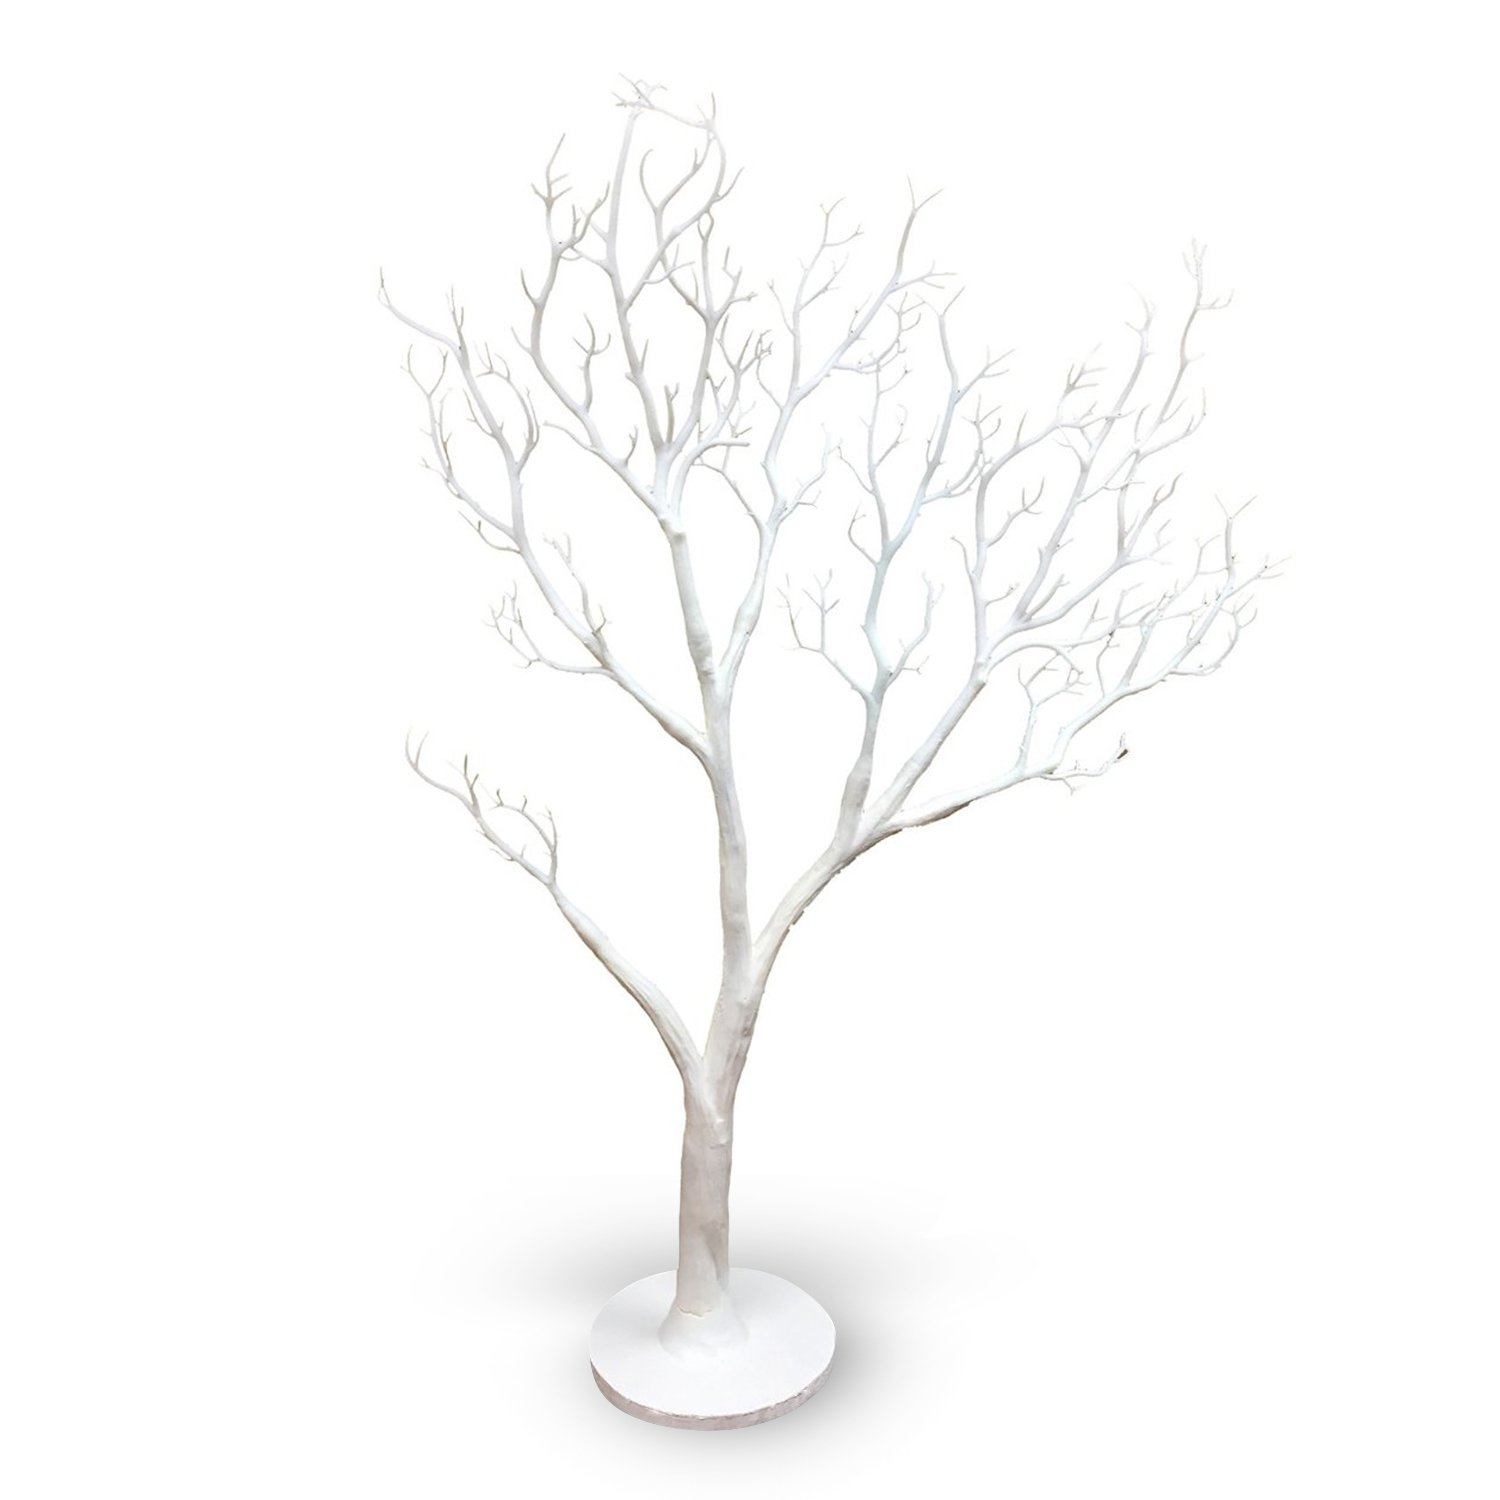 White Twig Tree for Holidays and Centerpieces - 39'' Inches Tall by 44LLC